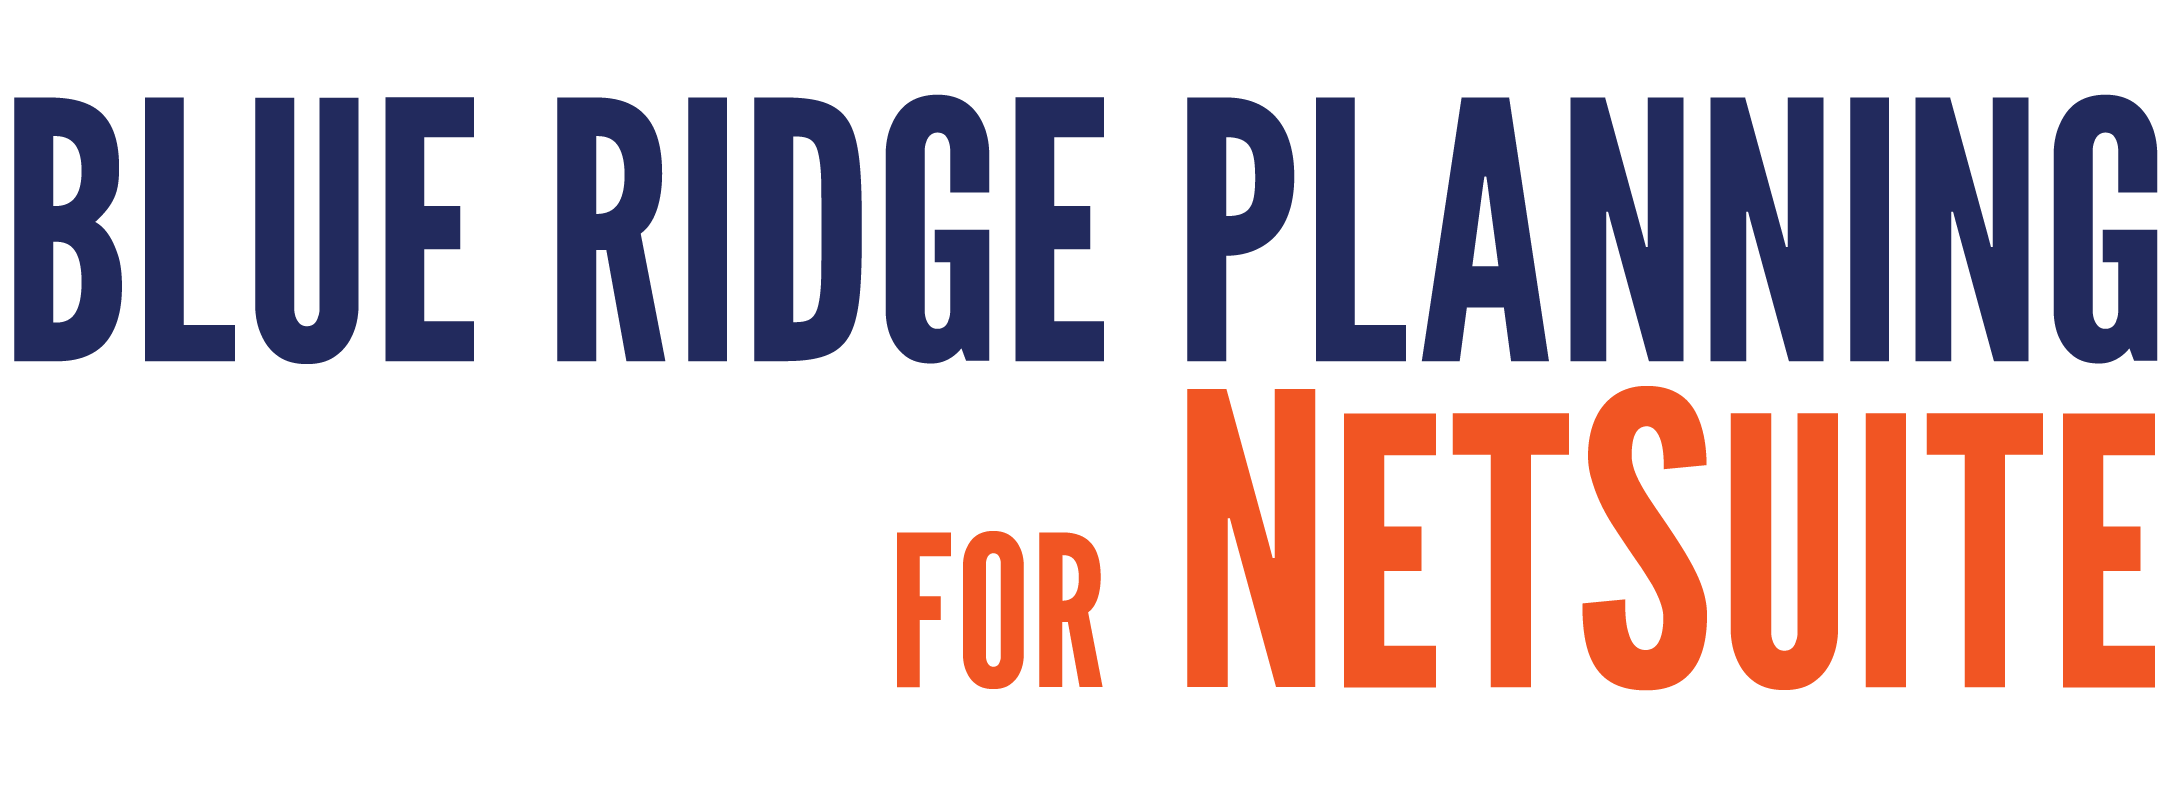 Blue Ridge Planning NetSuite